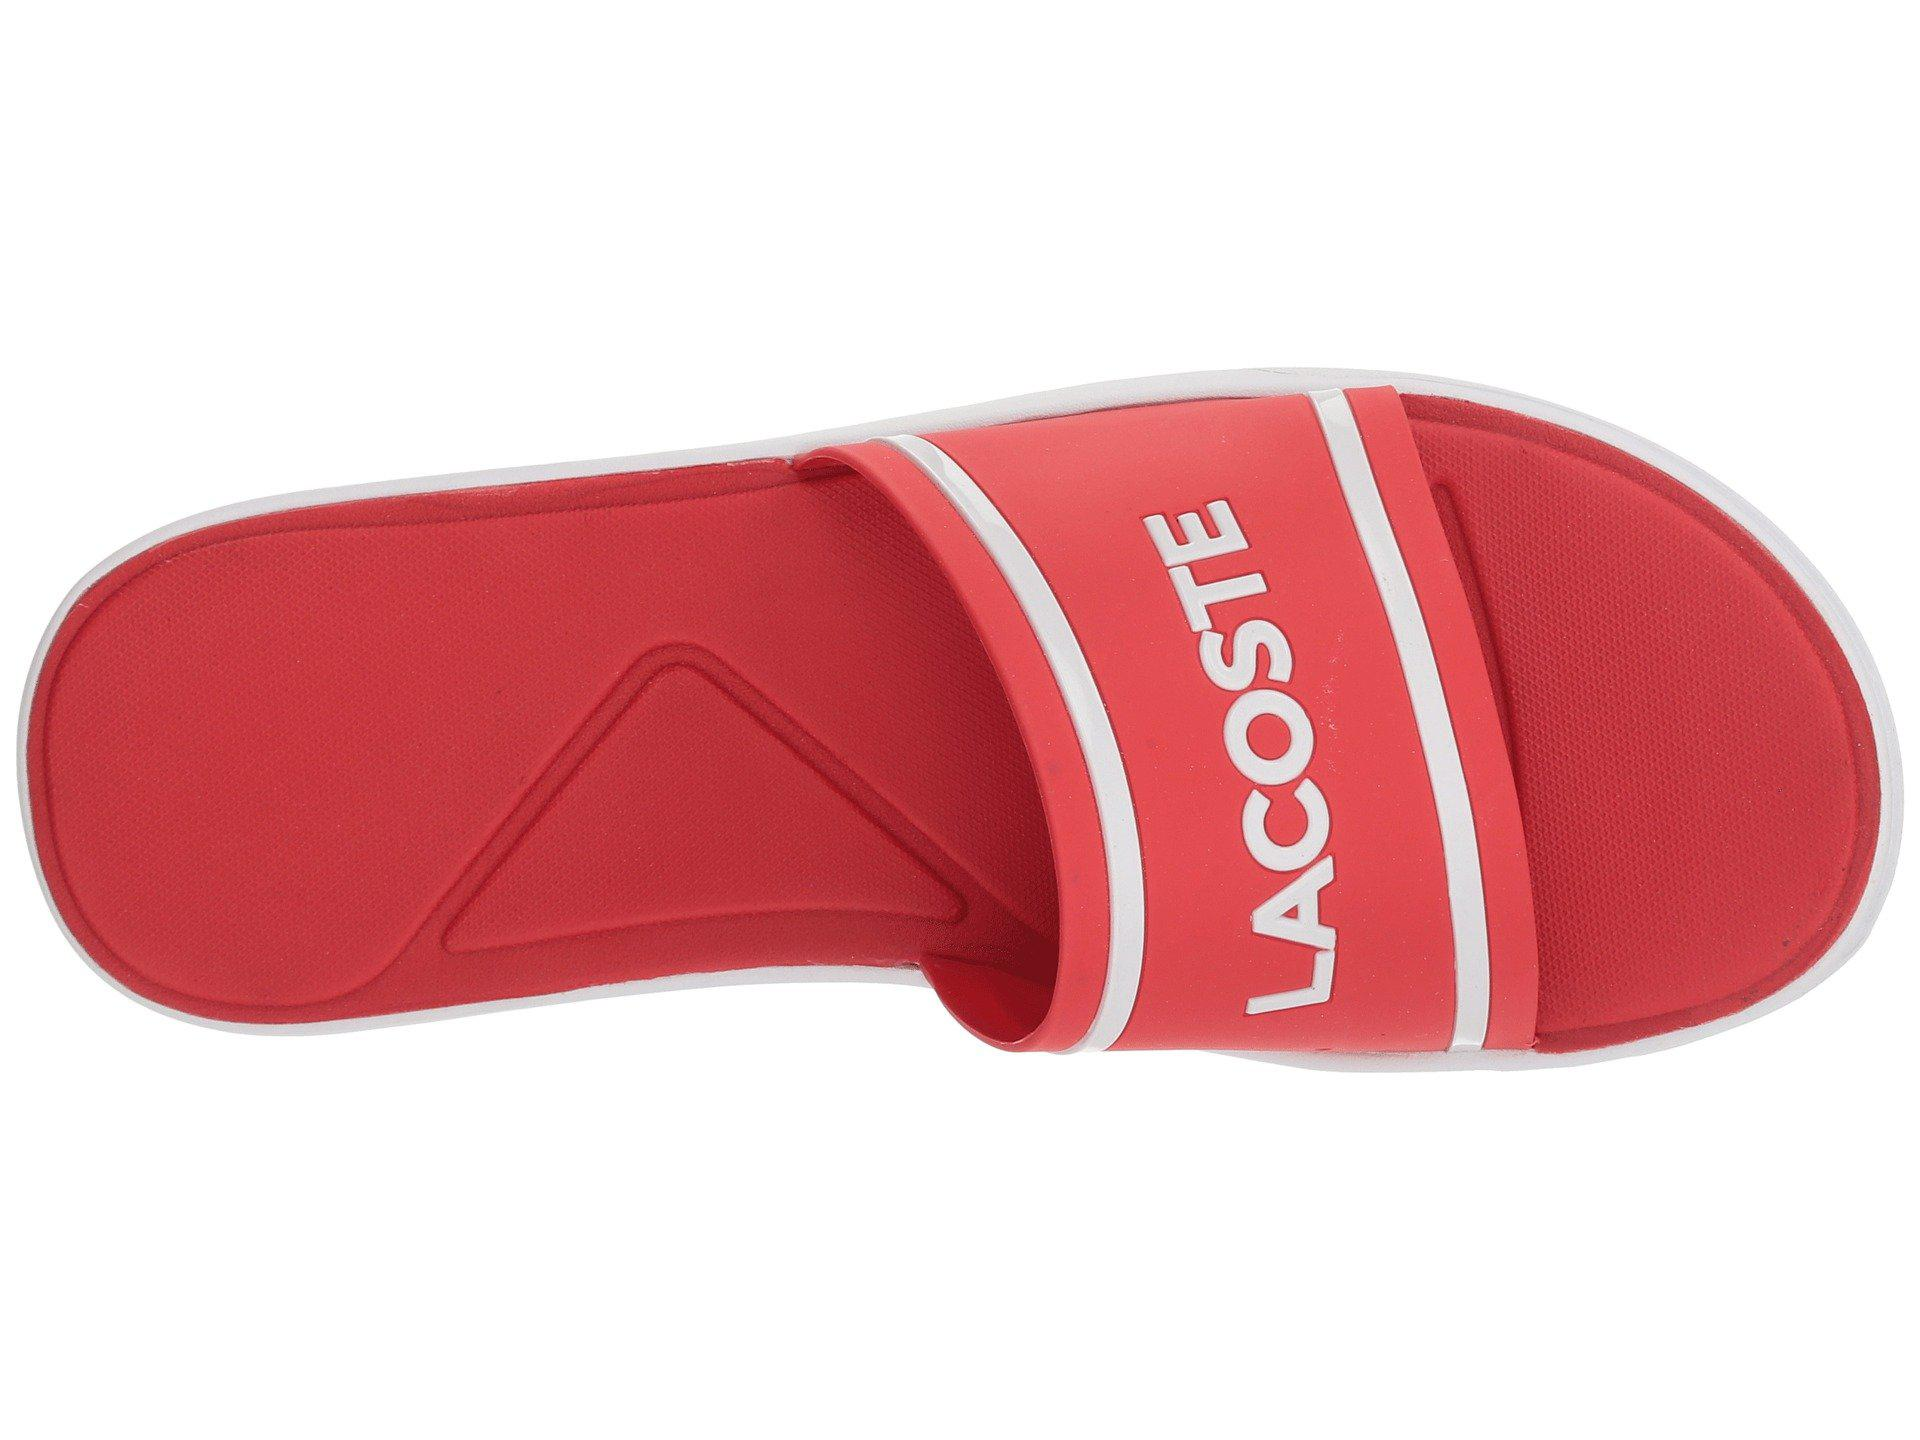 9034ab8e8e26ad Lyst - Lacoste L.30 Slide 218 1 (red white) Men s Slide Shoes in Red ...